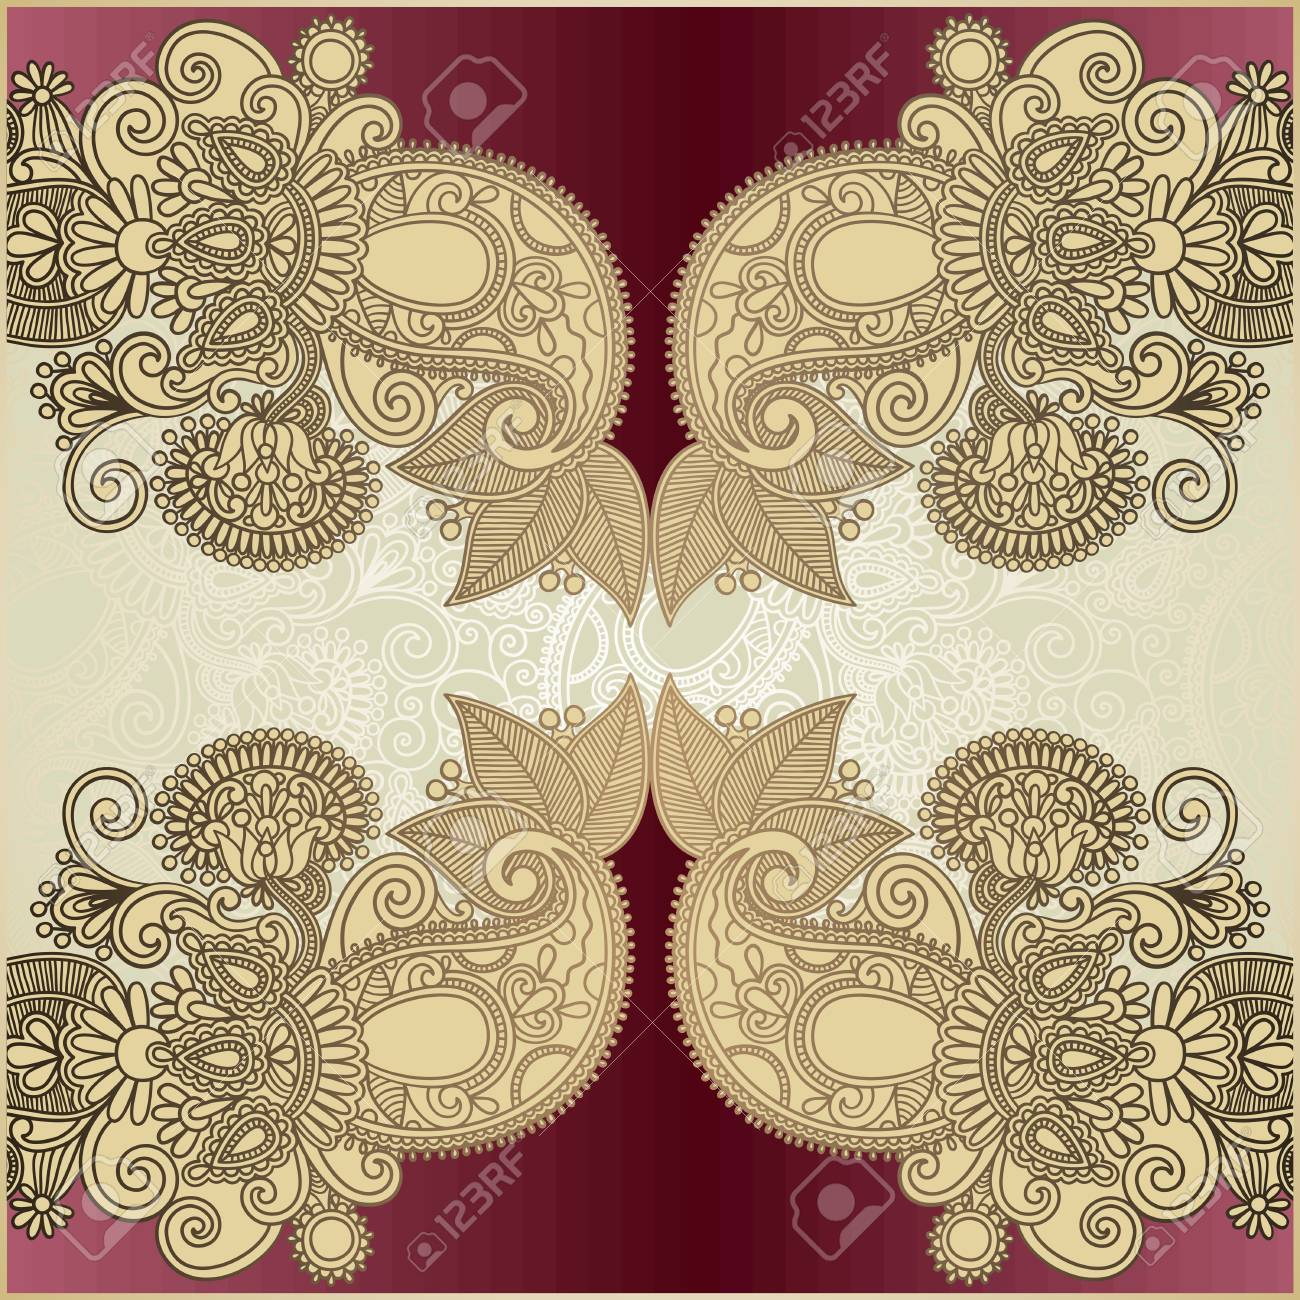 ornate floral background Stock Vector - 11638837